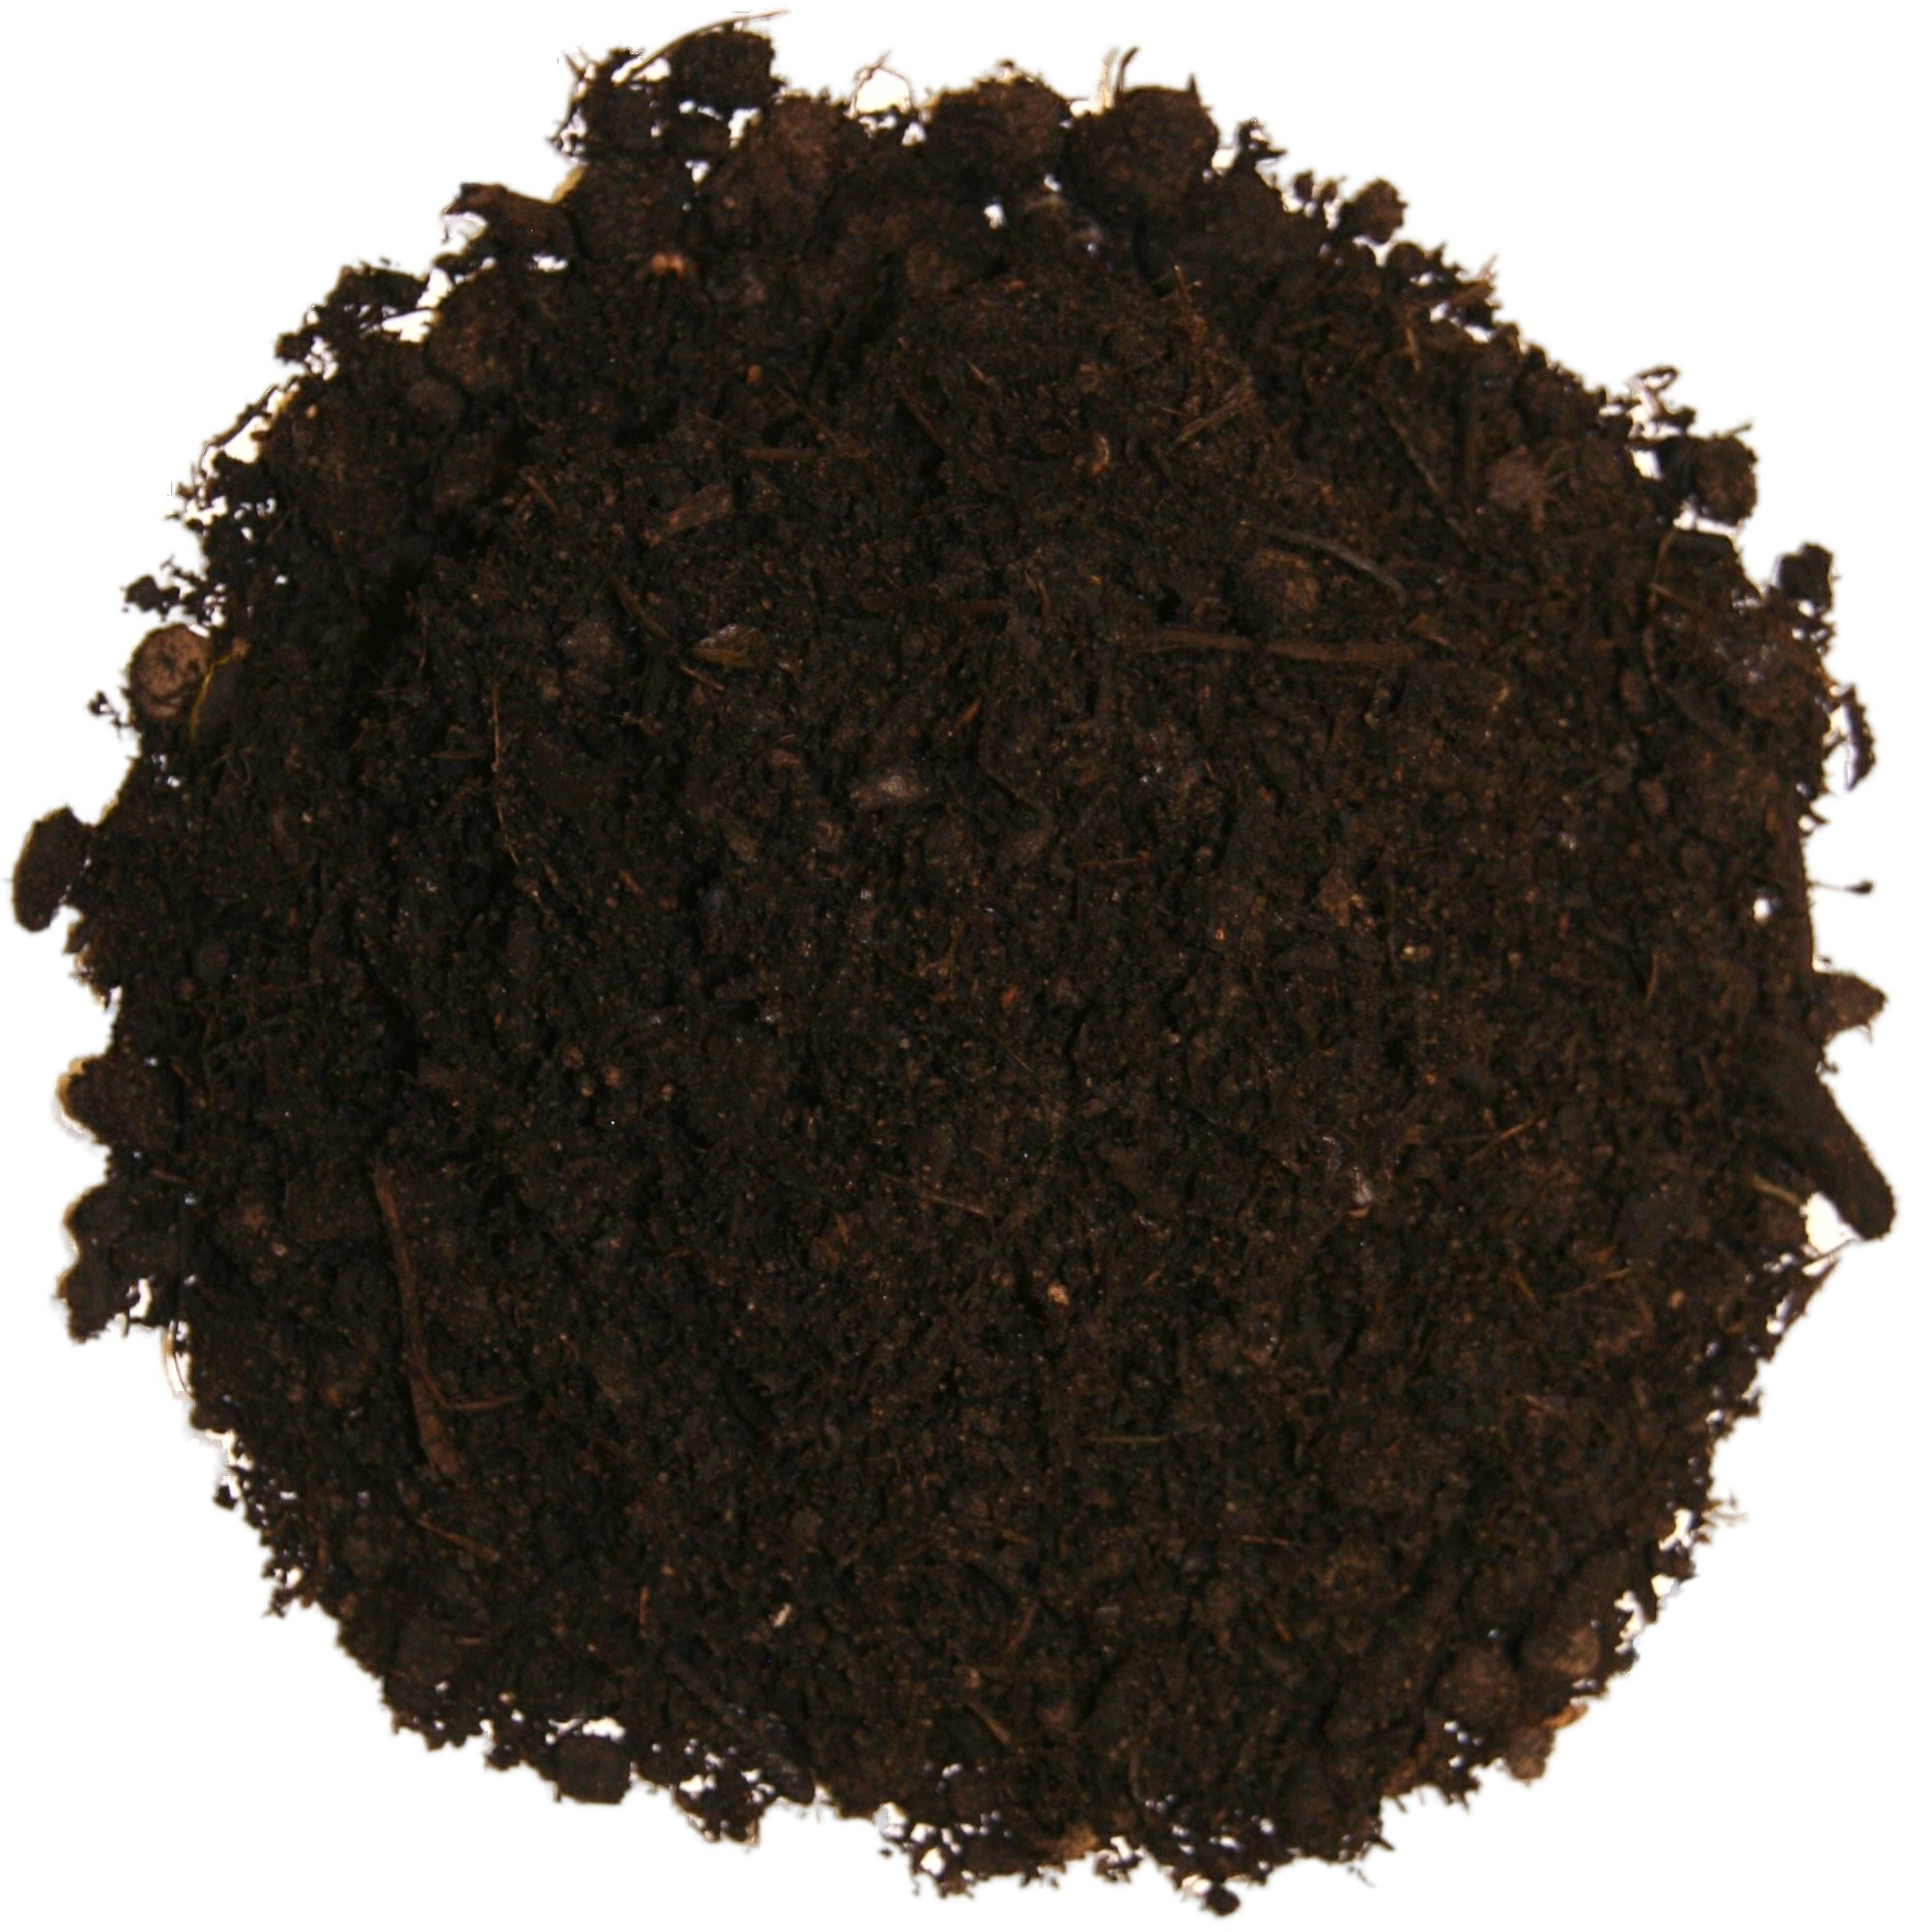 Veggie Gold Compost Compost Direct Ltd Compost Direct